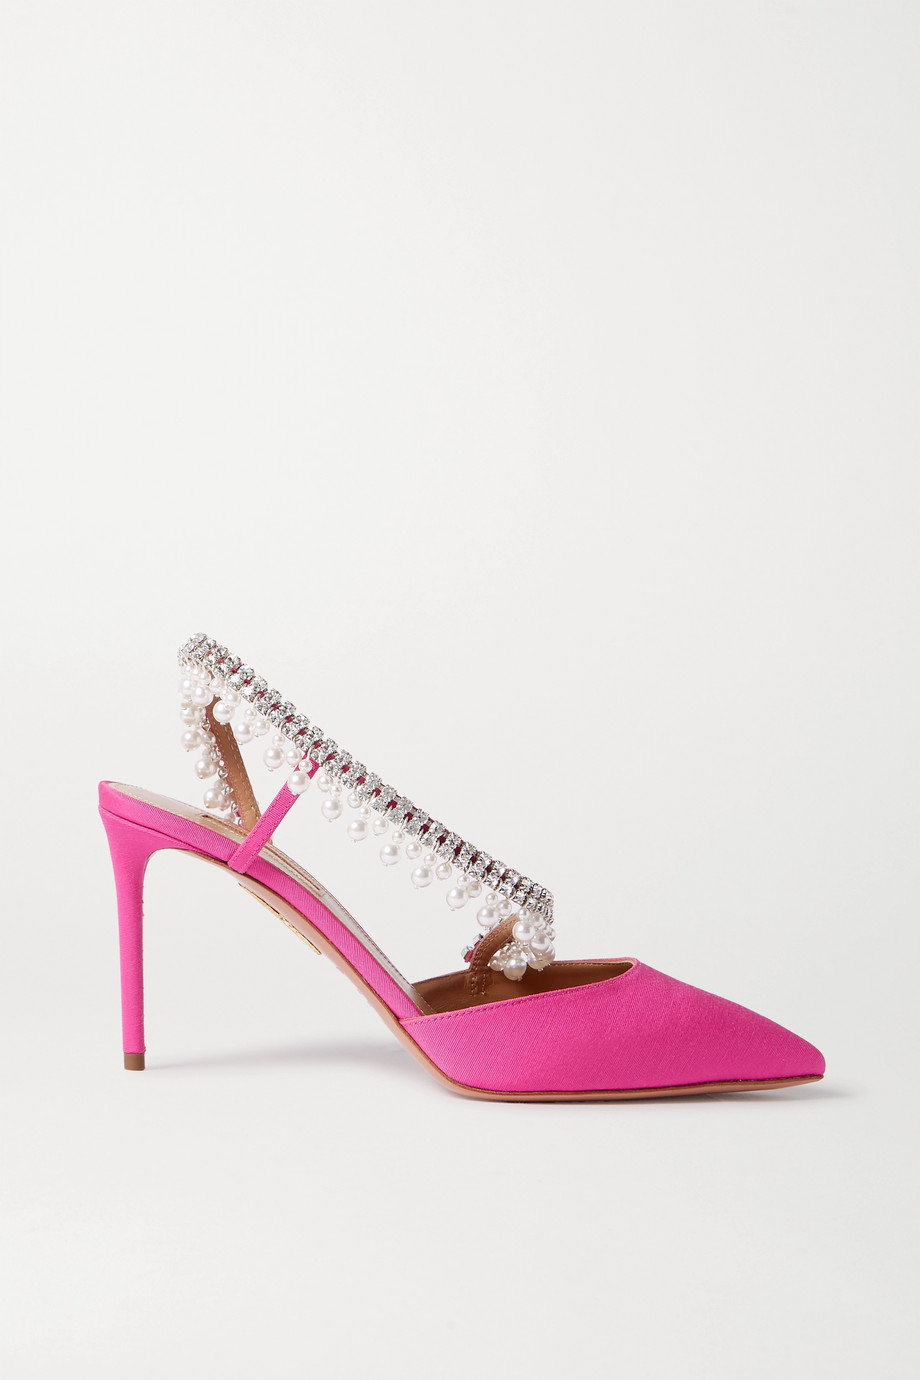 Aquazzura Exquisite 85 crystal and faux pearl-embellished grosgrain slingback pumps